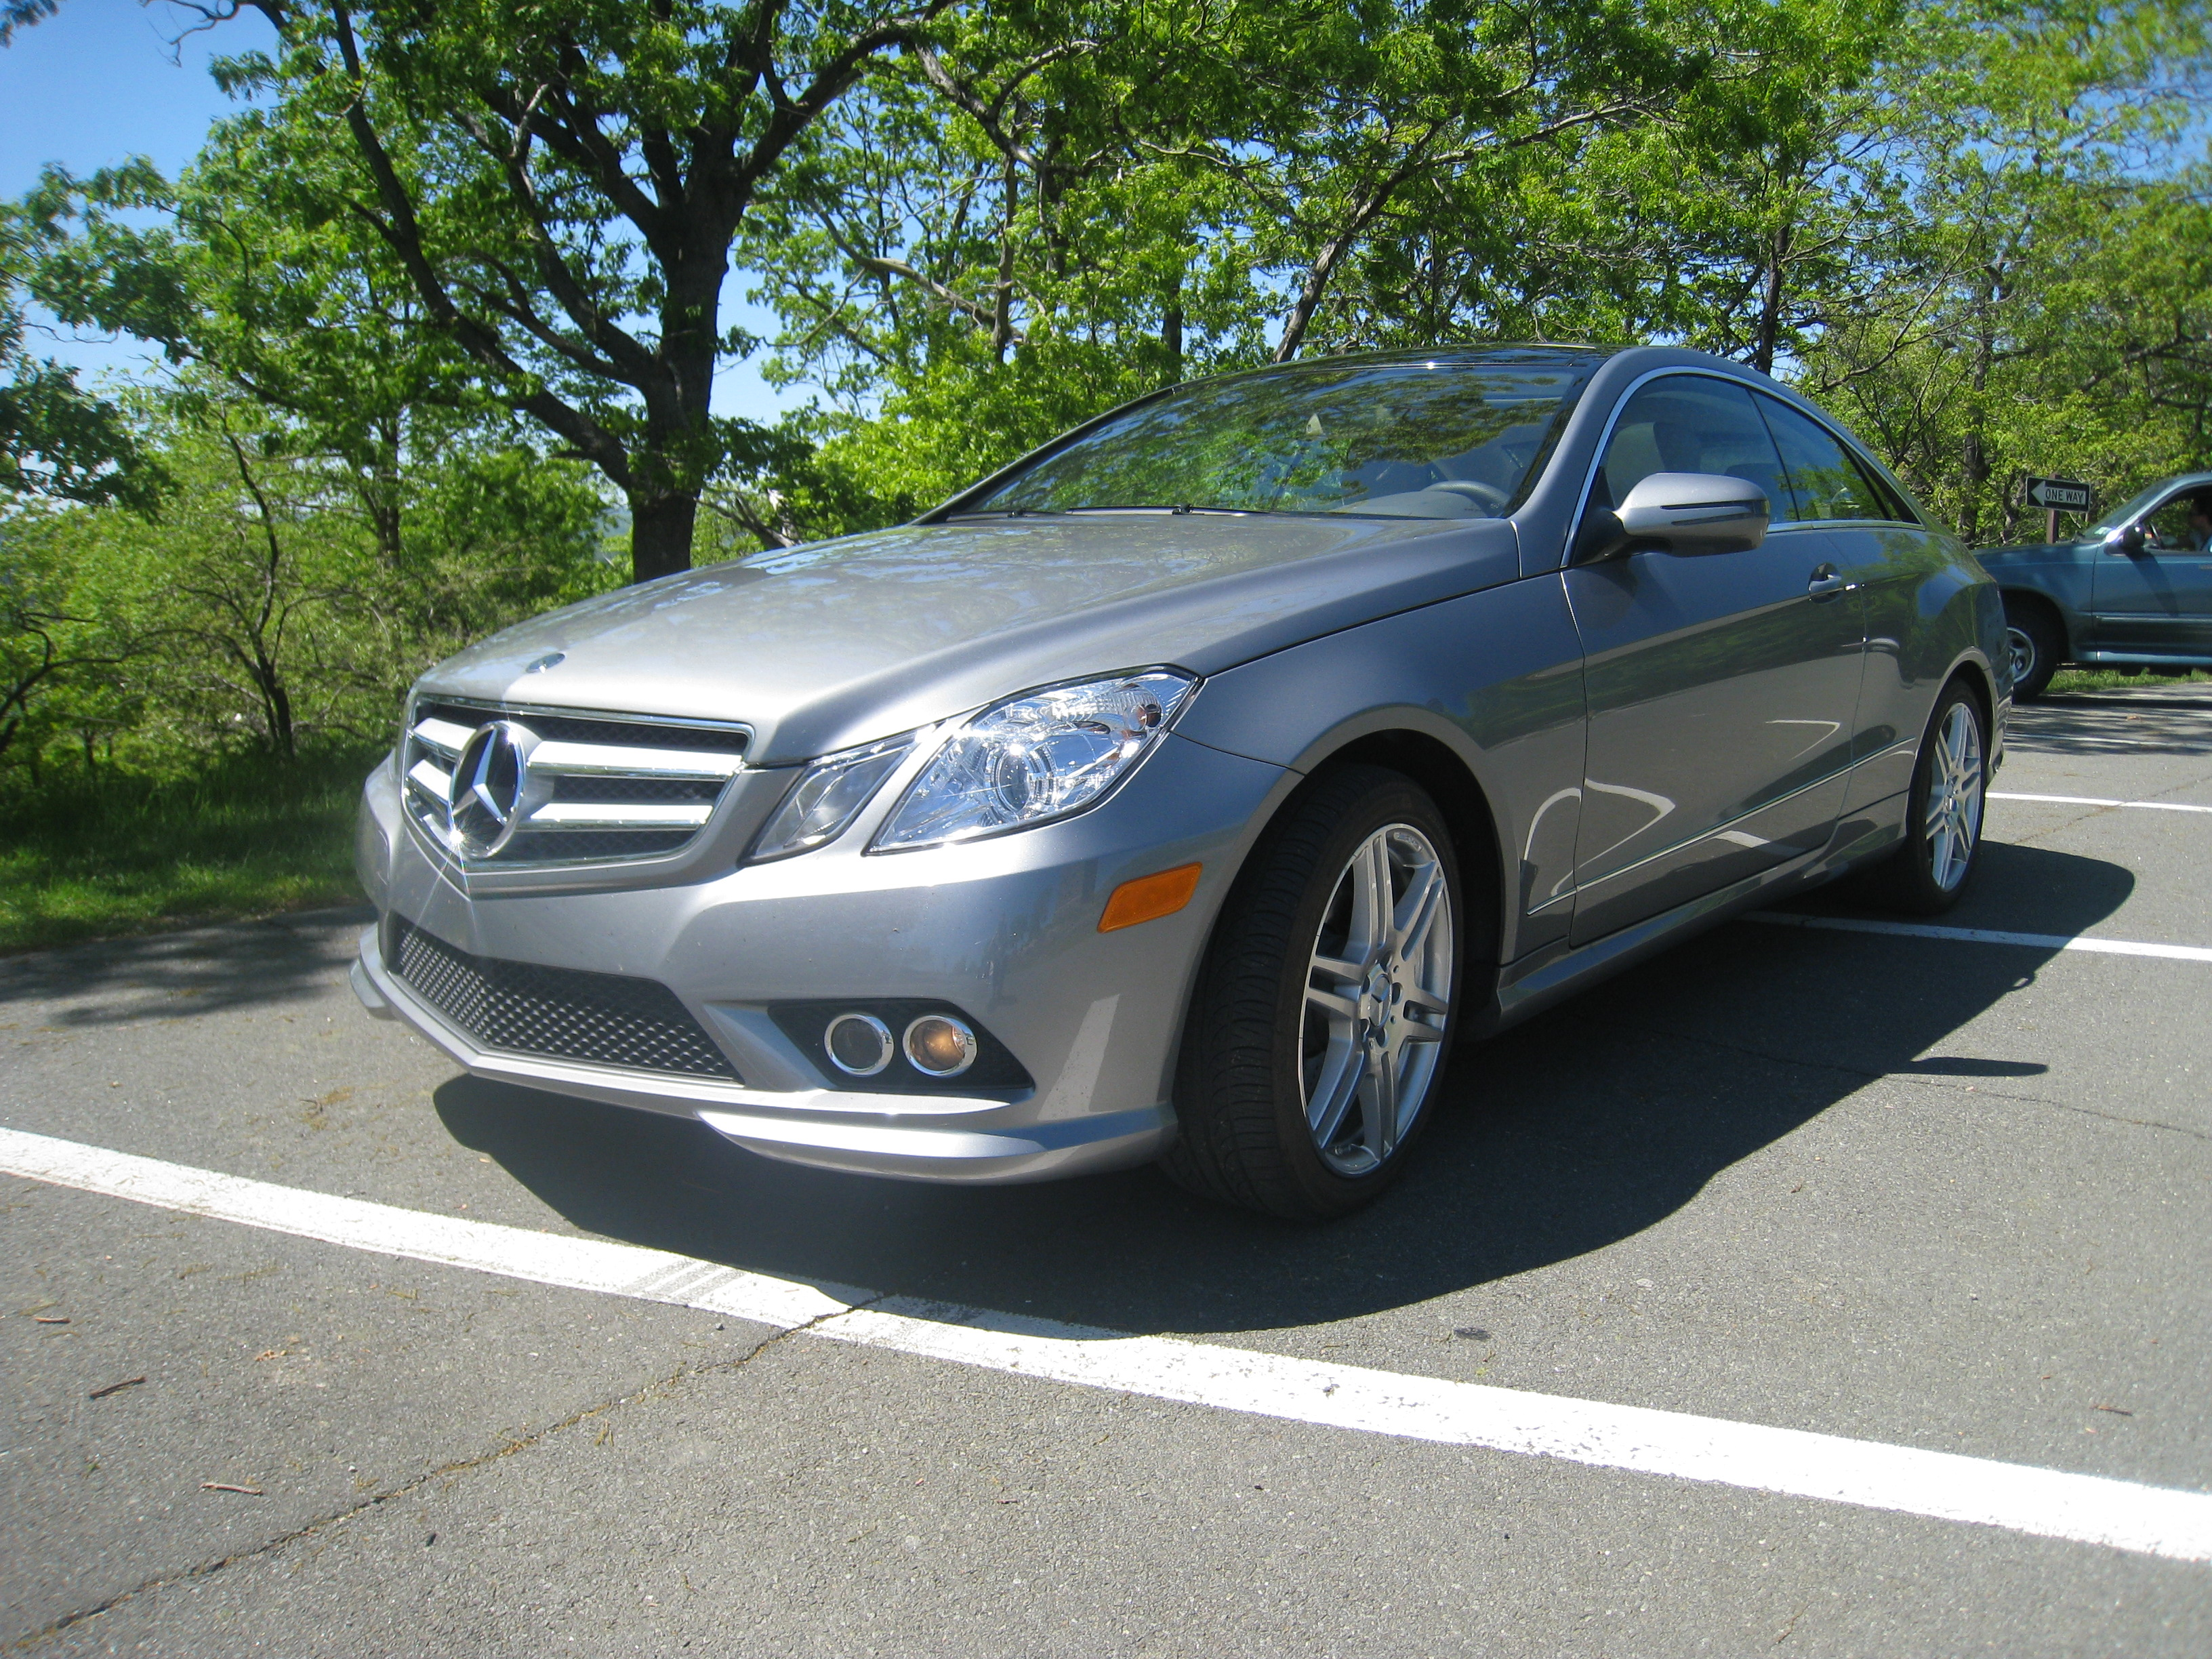 2010 mercedes benz e350 coupe first drive autosavant autosavant. Black Bedroom Furniture Sets. Home Design Ideas